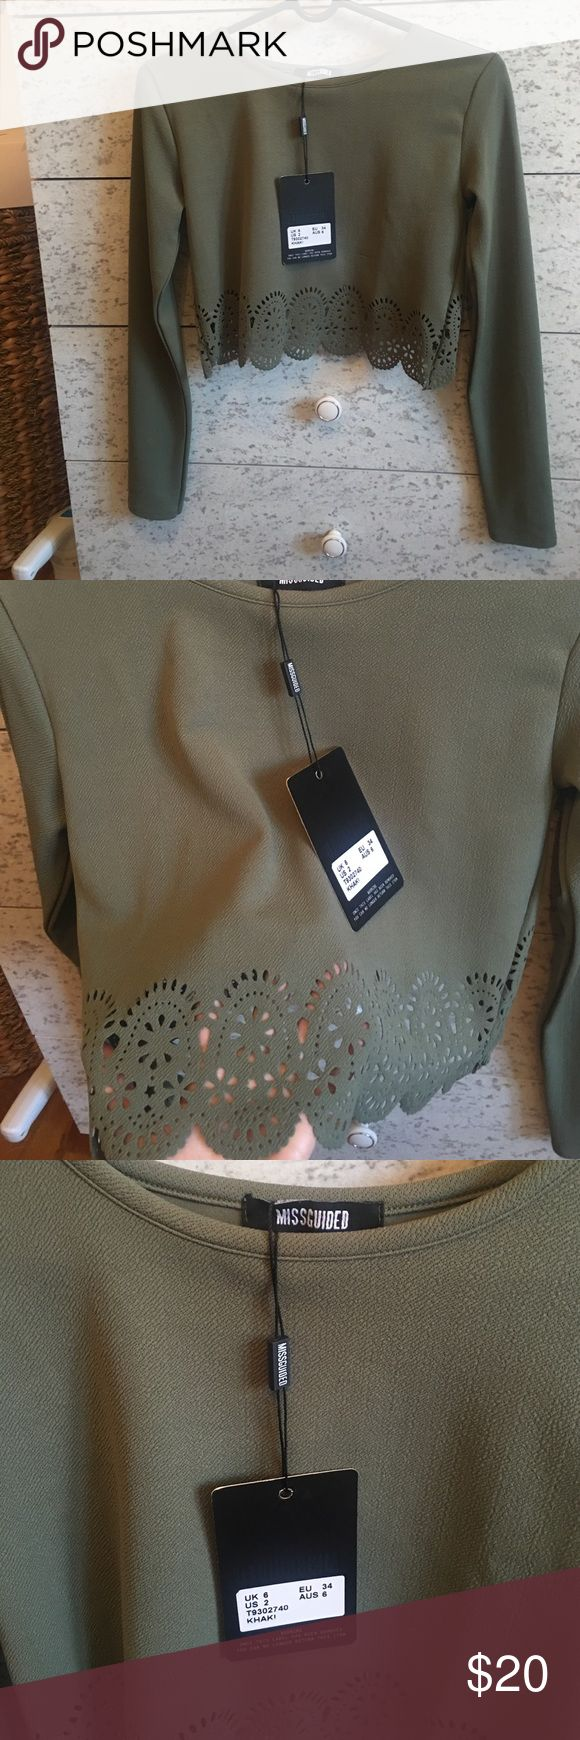 Green long sleeve crop top from misguided NWT Never worn. Crop top. Long sleeve from missguided. Tags still on. Missguided Tops Crop Tops